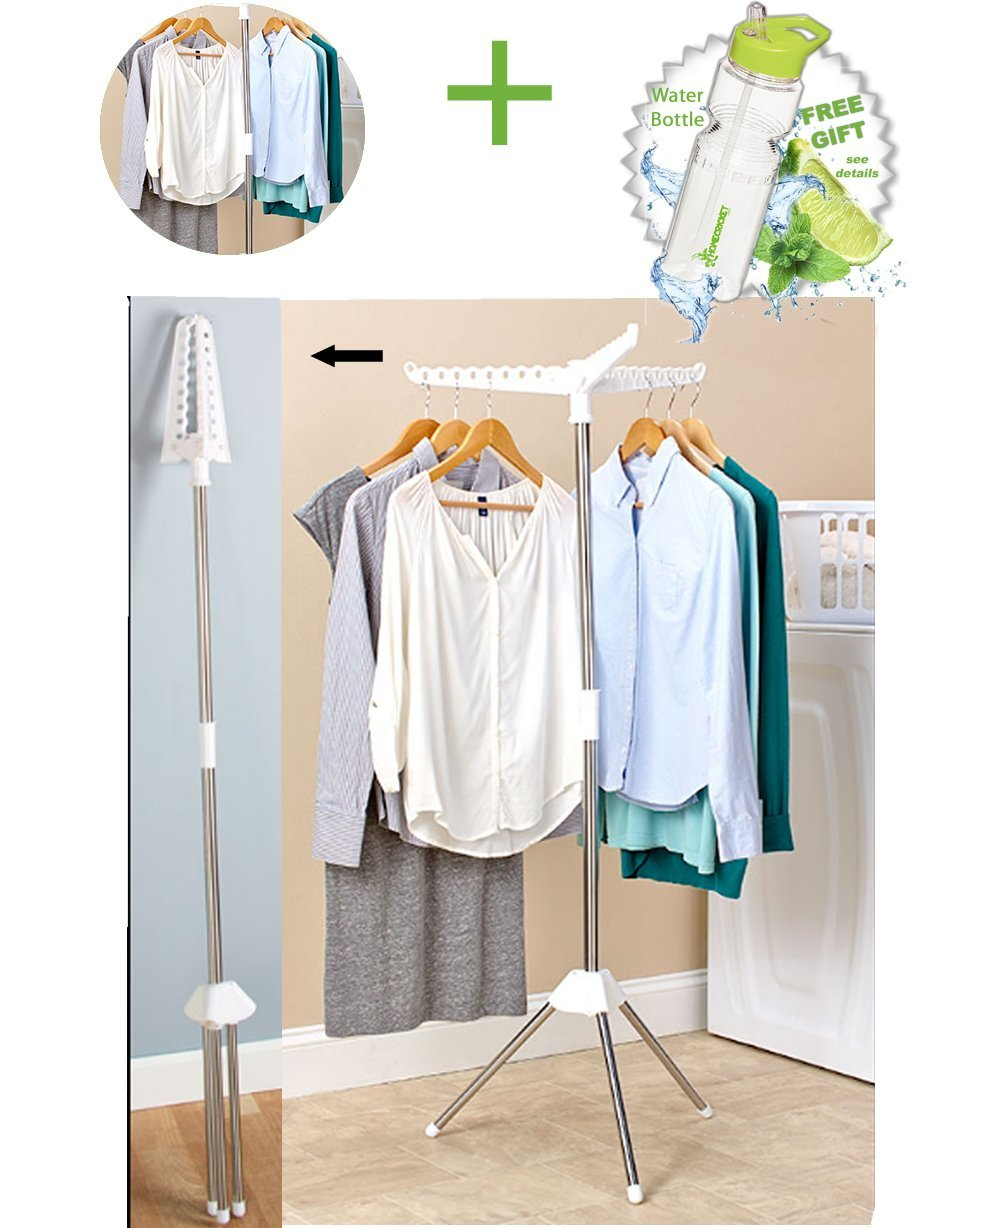 Gift Included- Air-dry Wet Garment Clothes Drying Pole Hang and Dry Rack for Home, Travel or College + FREE Bonus Water Bottle byHomecricket by HomeCricket (Image #1)